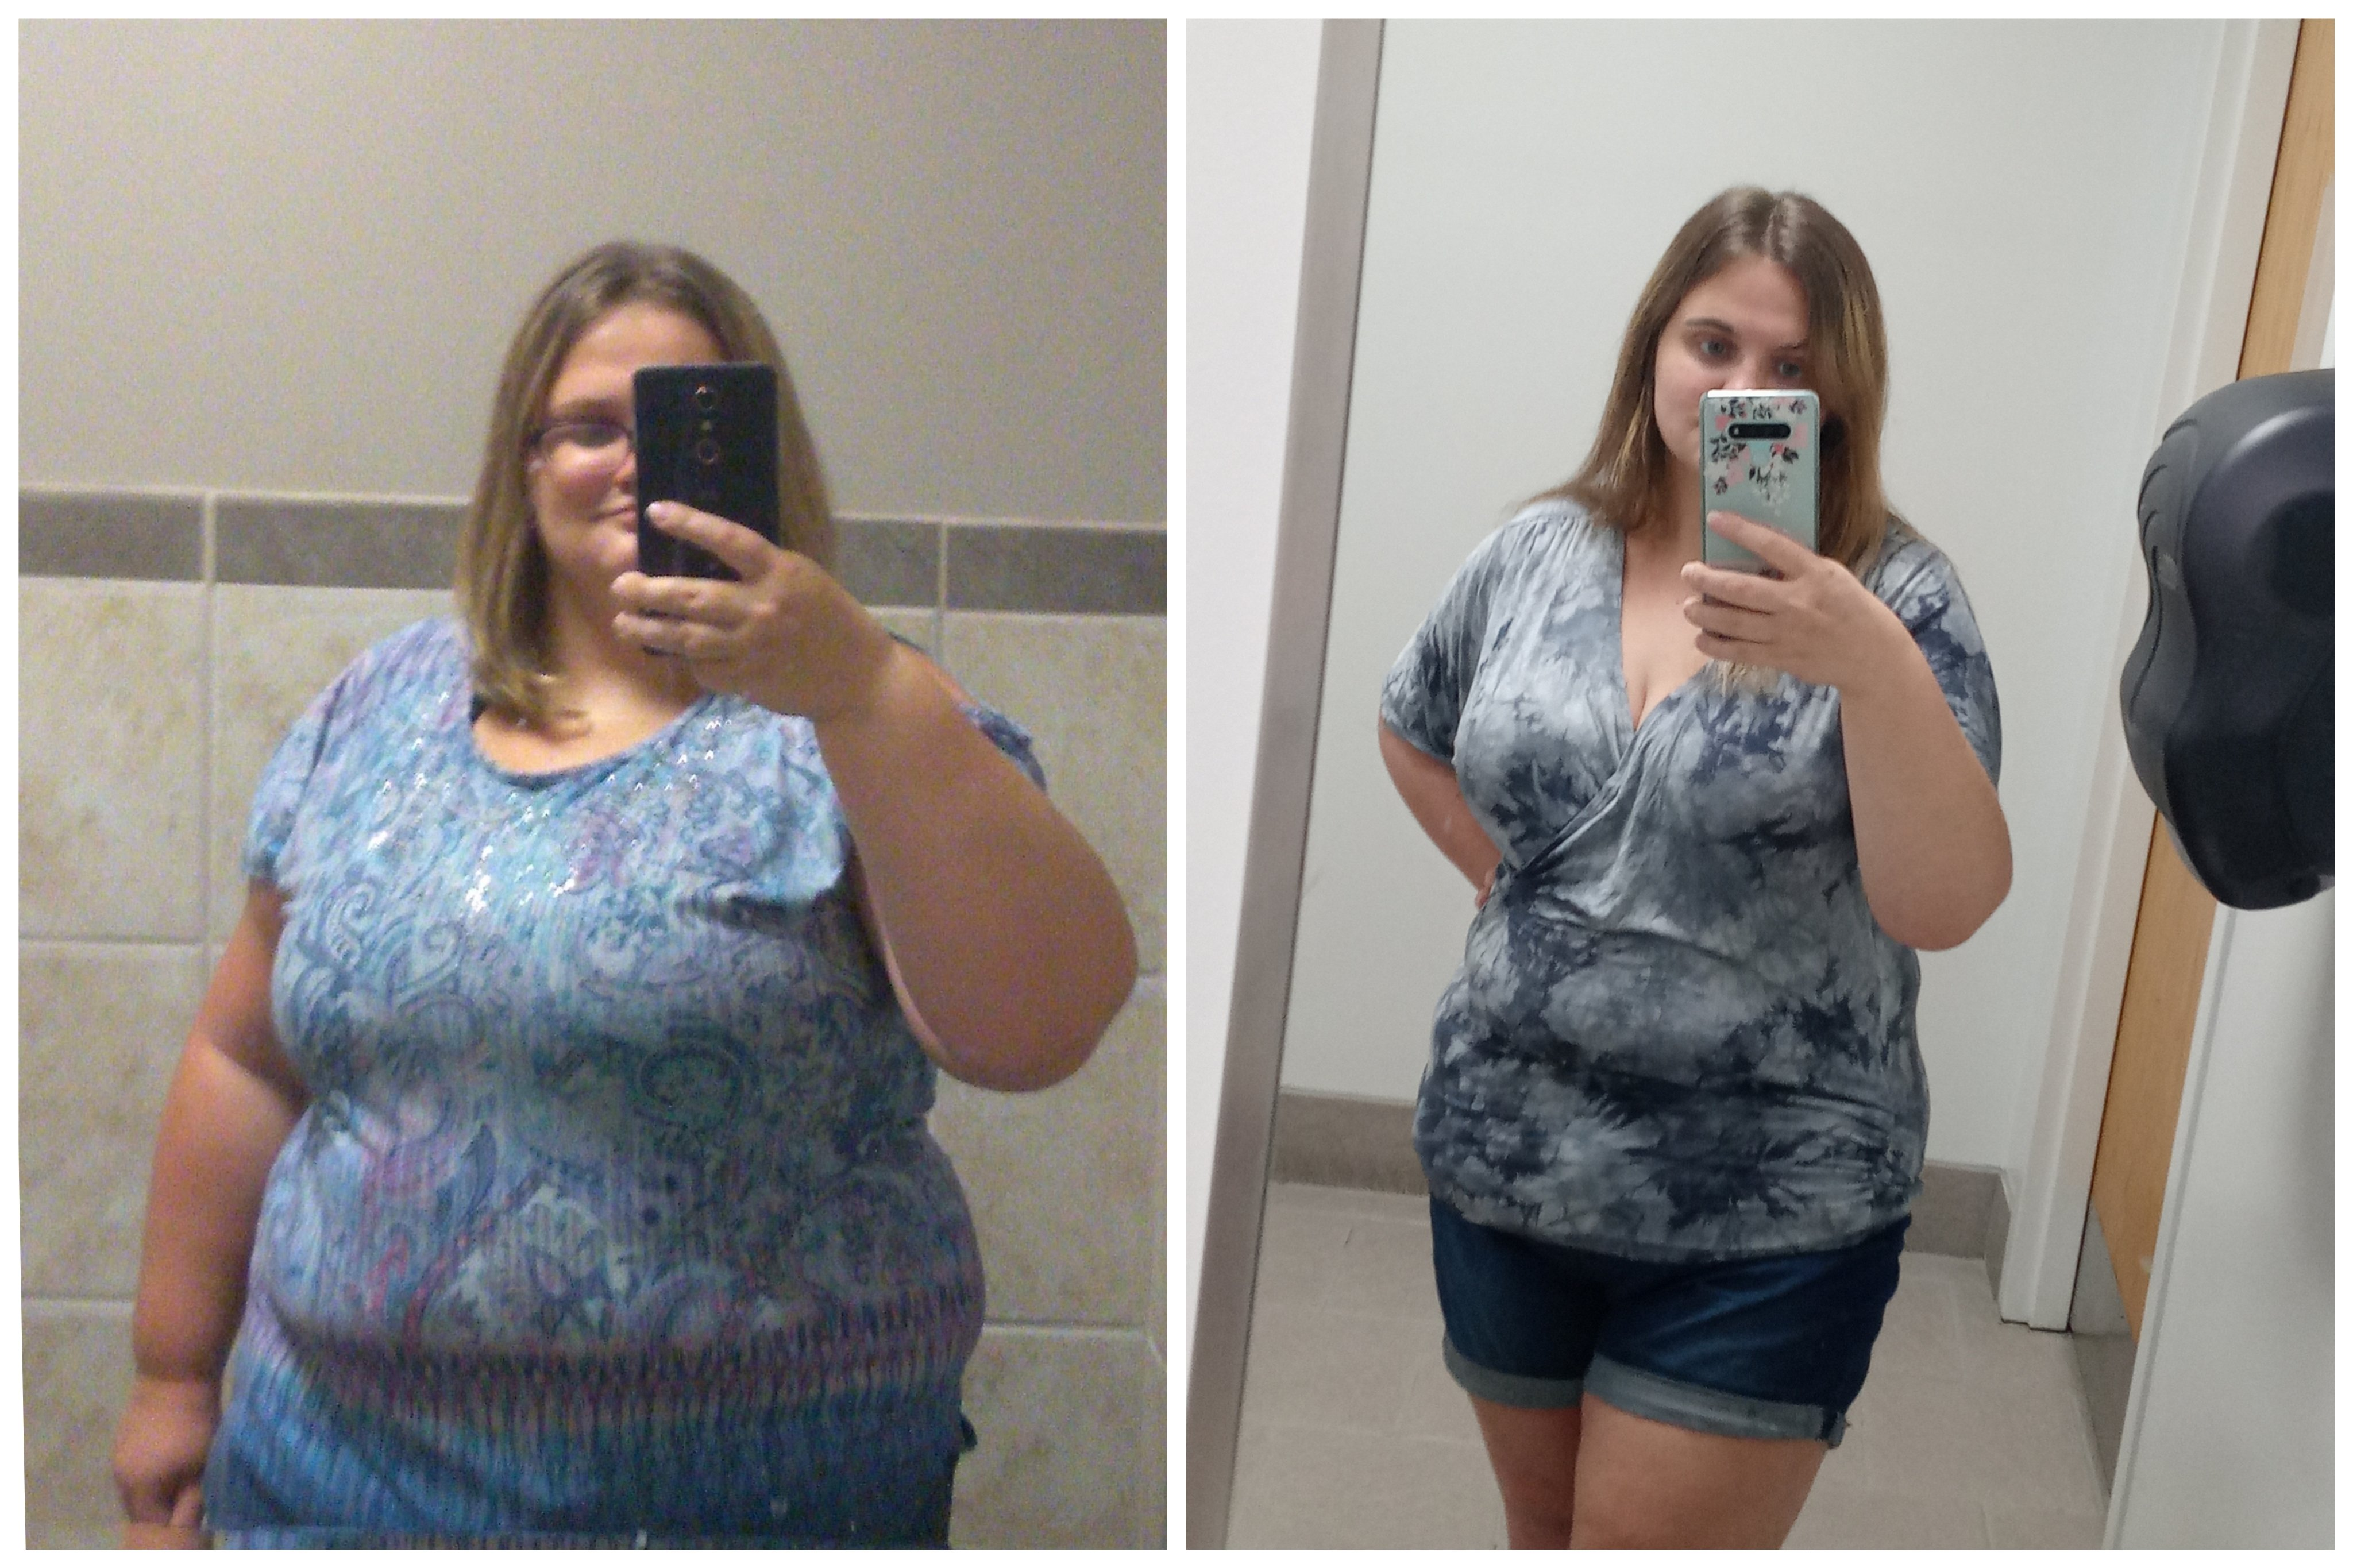 Before and After 90 lbs Weight Loss 5'3 Female 295 lbs to 205 lbs